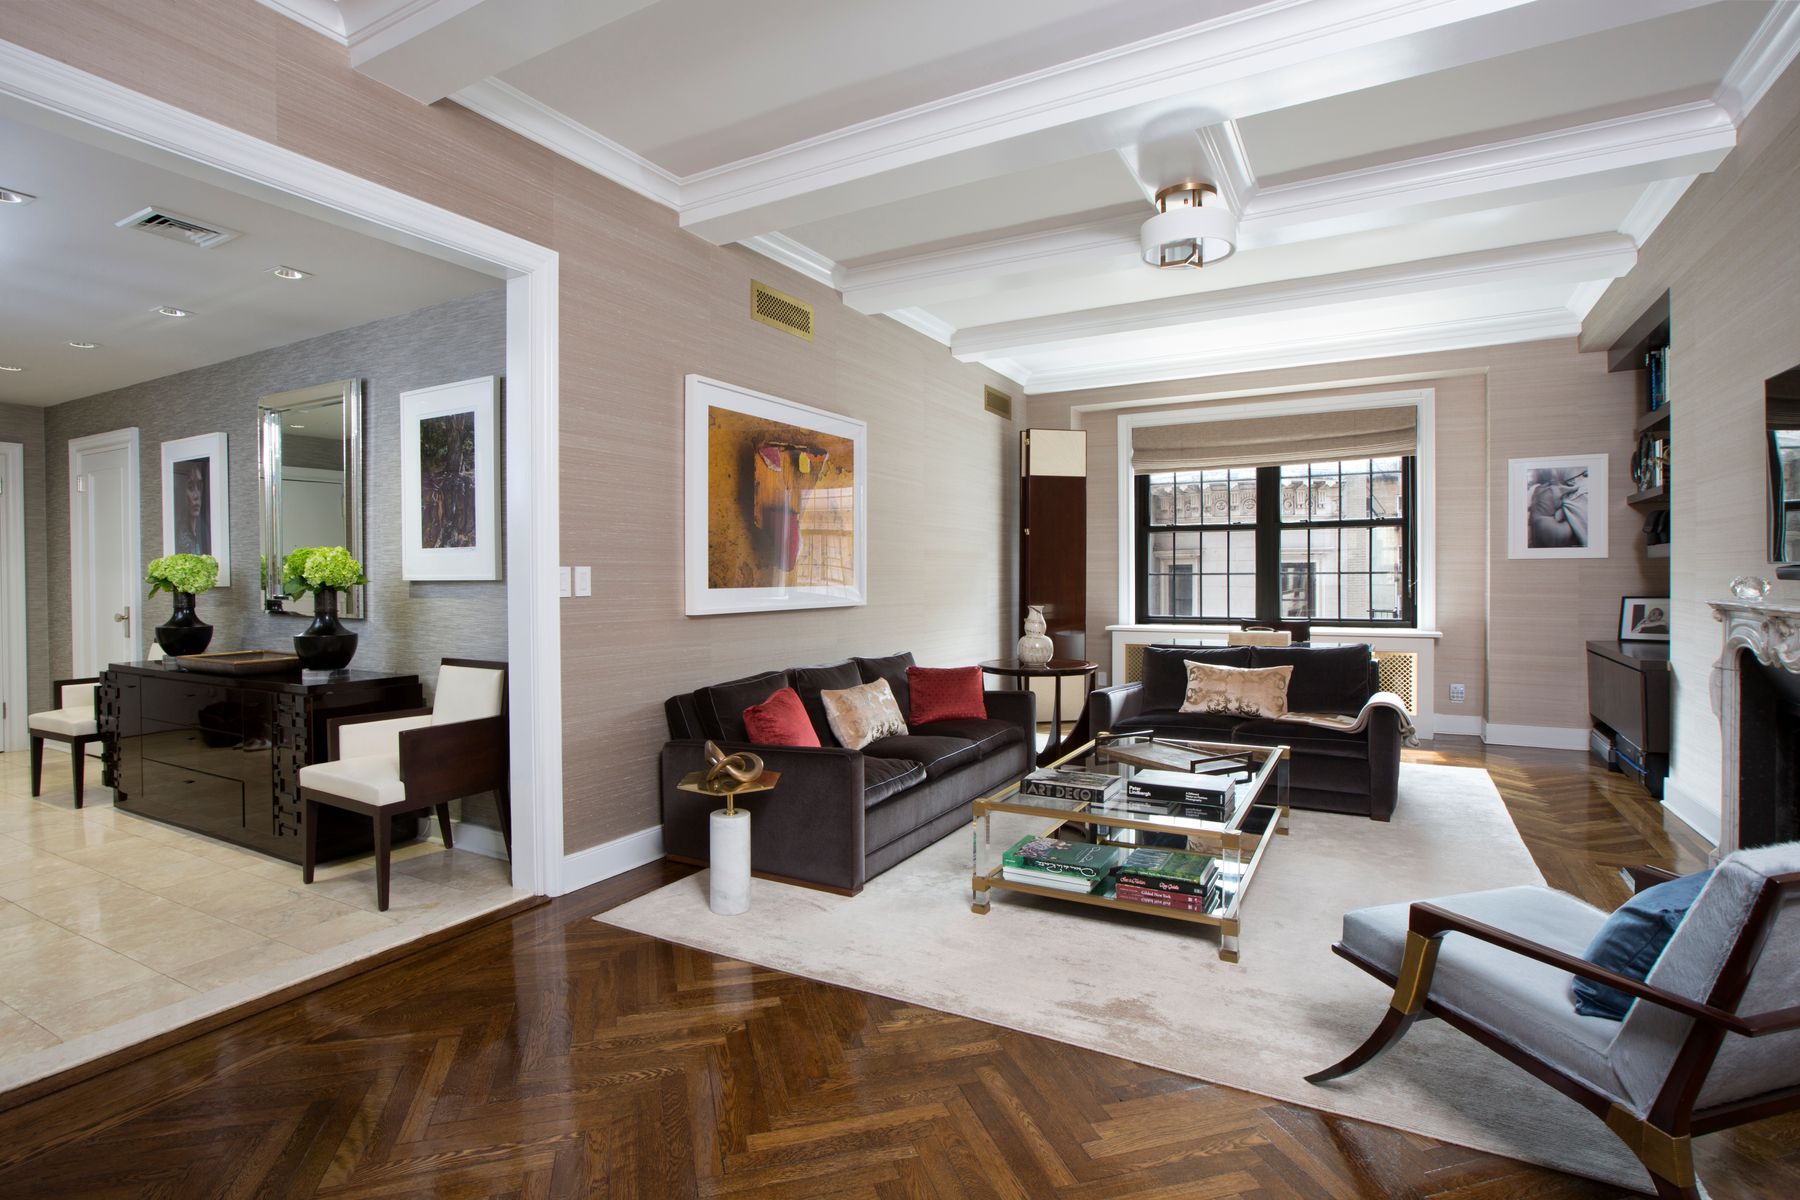 Martine Capdevielle_Luxury Real Estate NYC_21 East 66th St Apt 5w 1.jpg